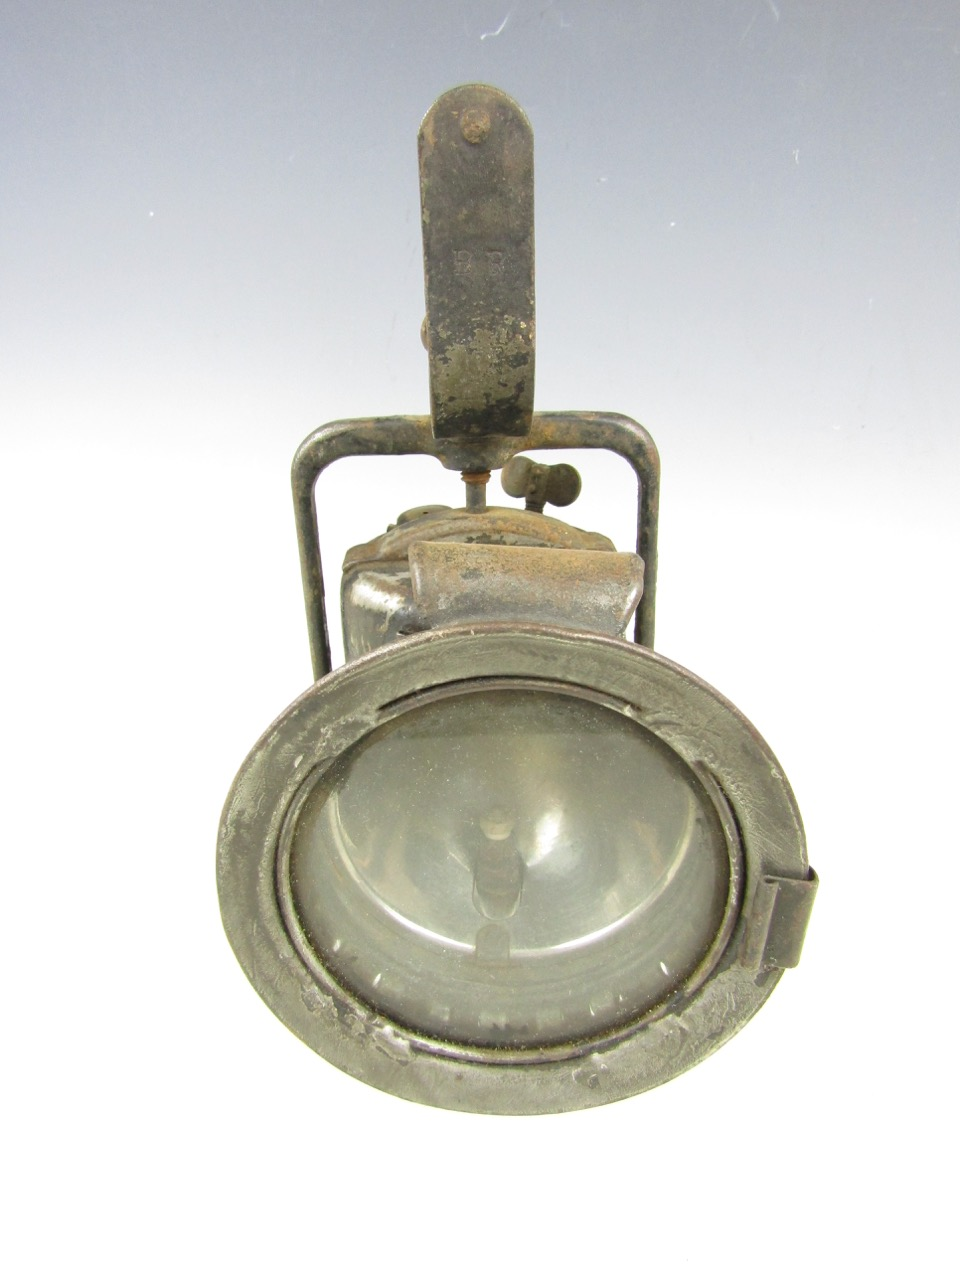 Lot 6 - A Crestella engineering co The Premier Lamp